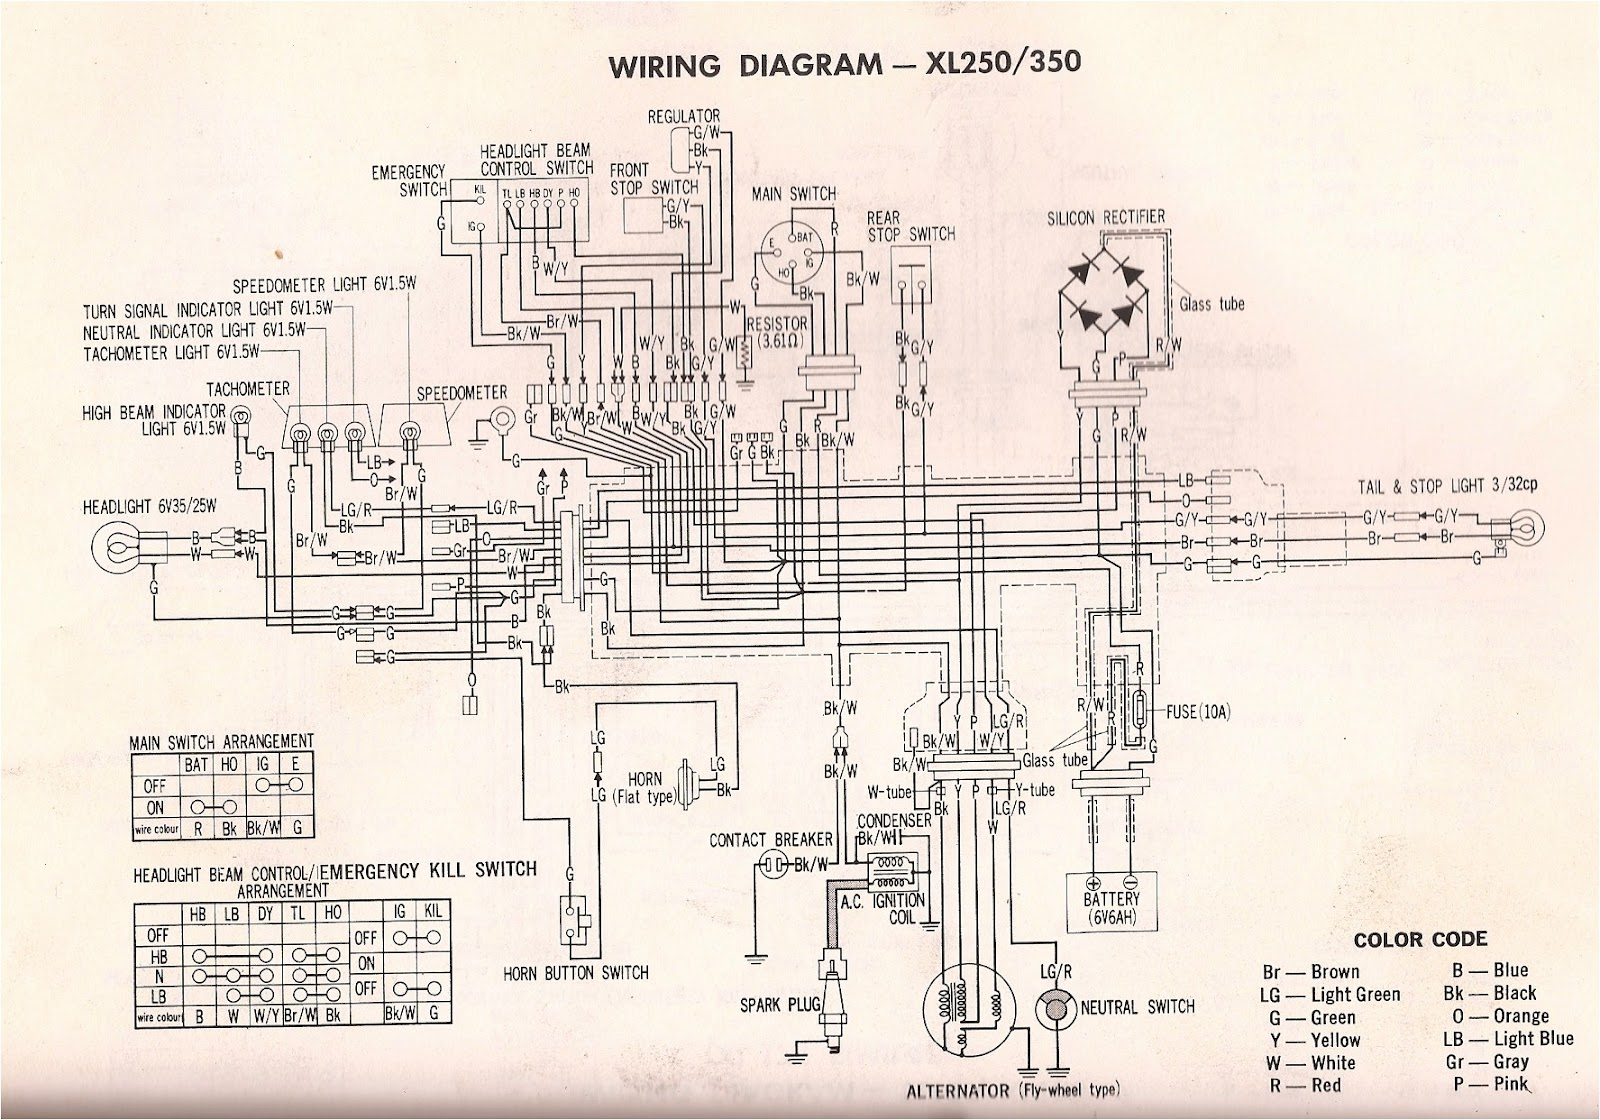 jet lathe electrical wiring diagram symbol wiring diagrams scematic south  bend lathe wiring diagram jet lathe